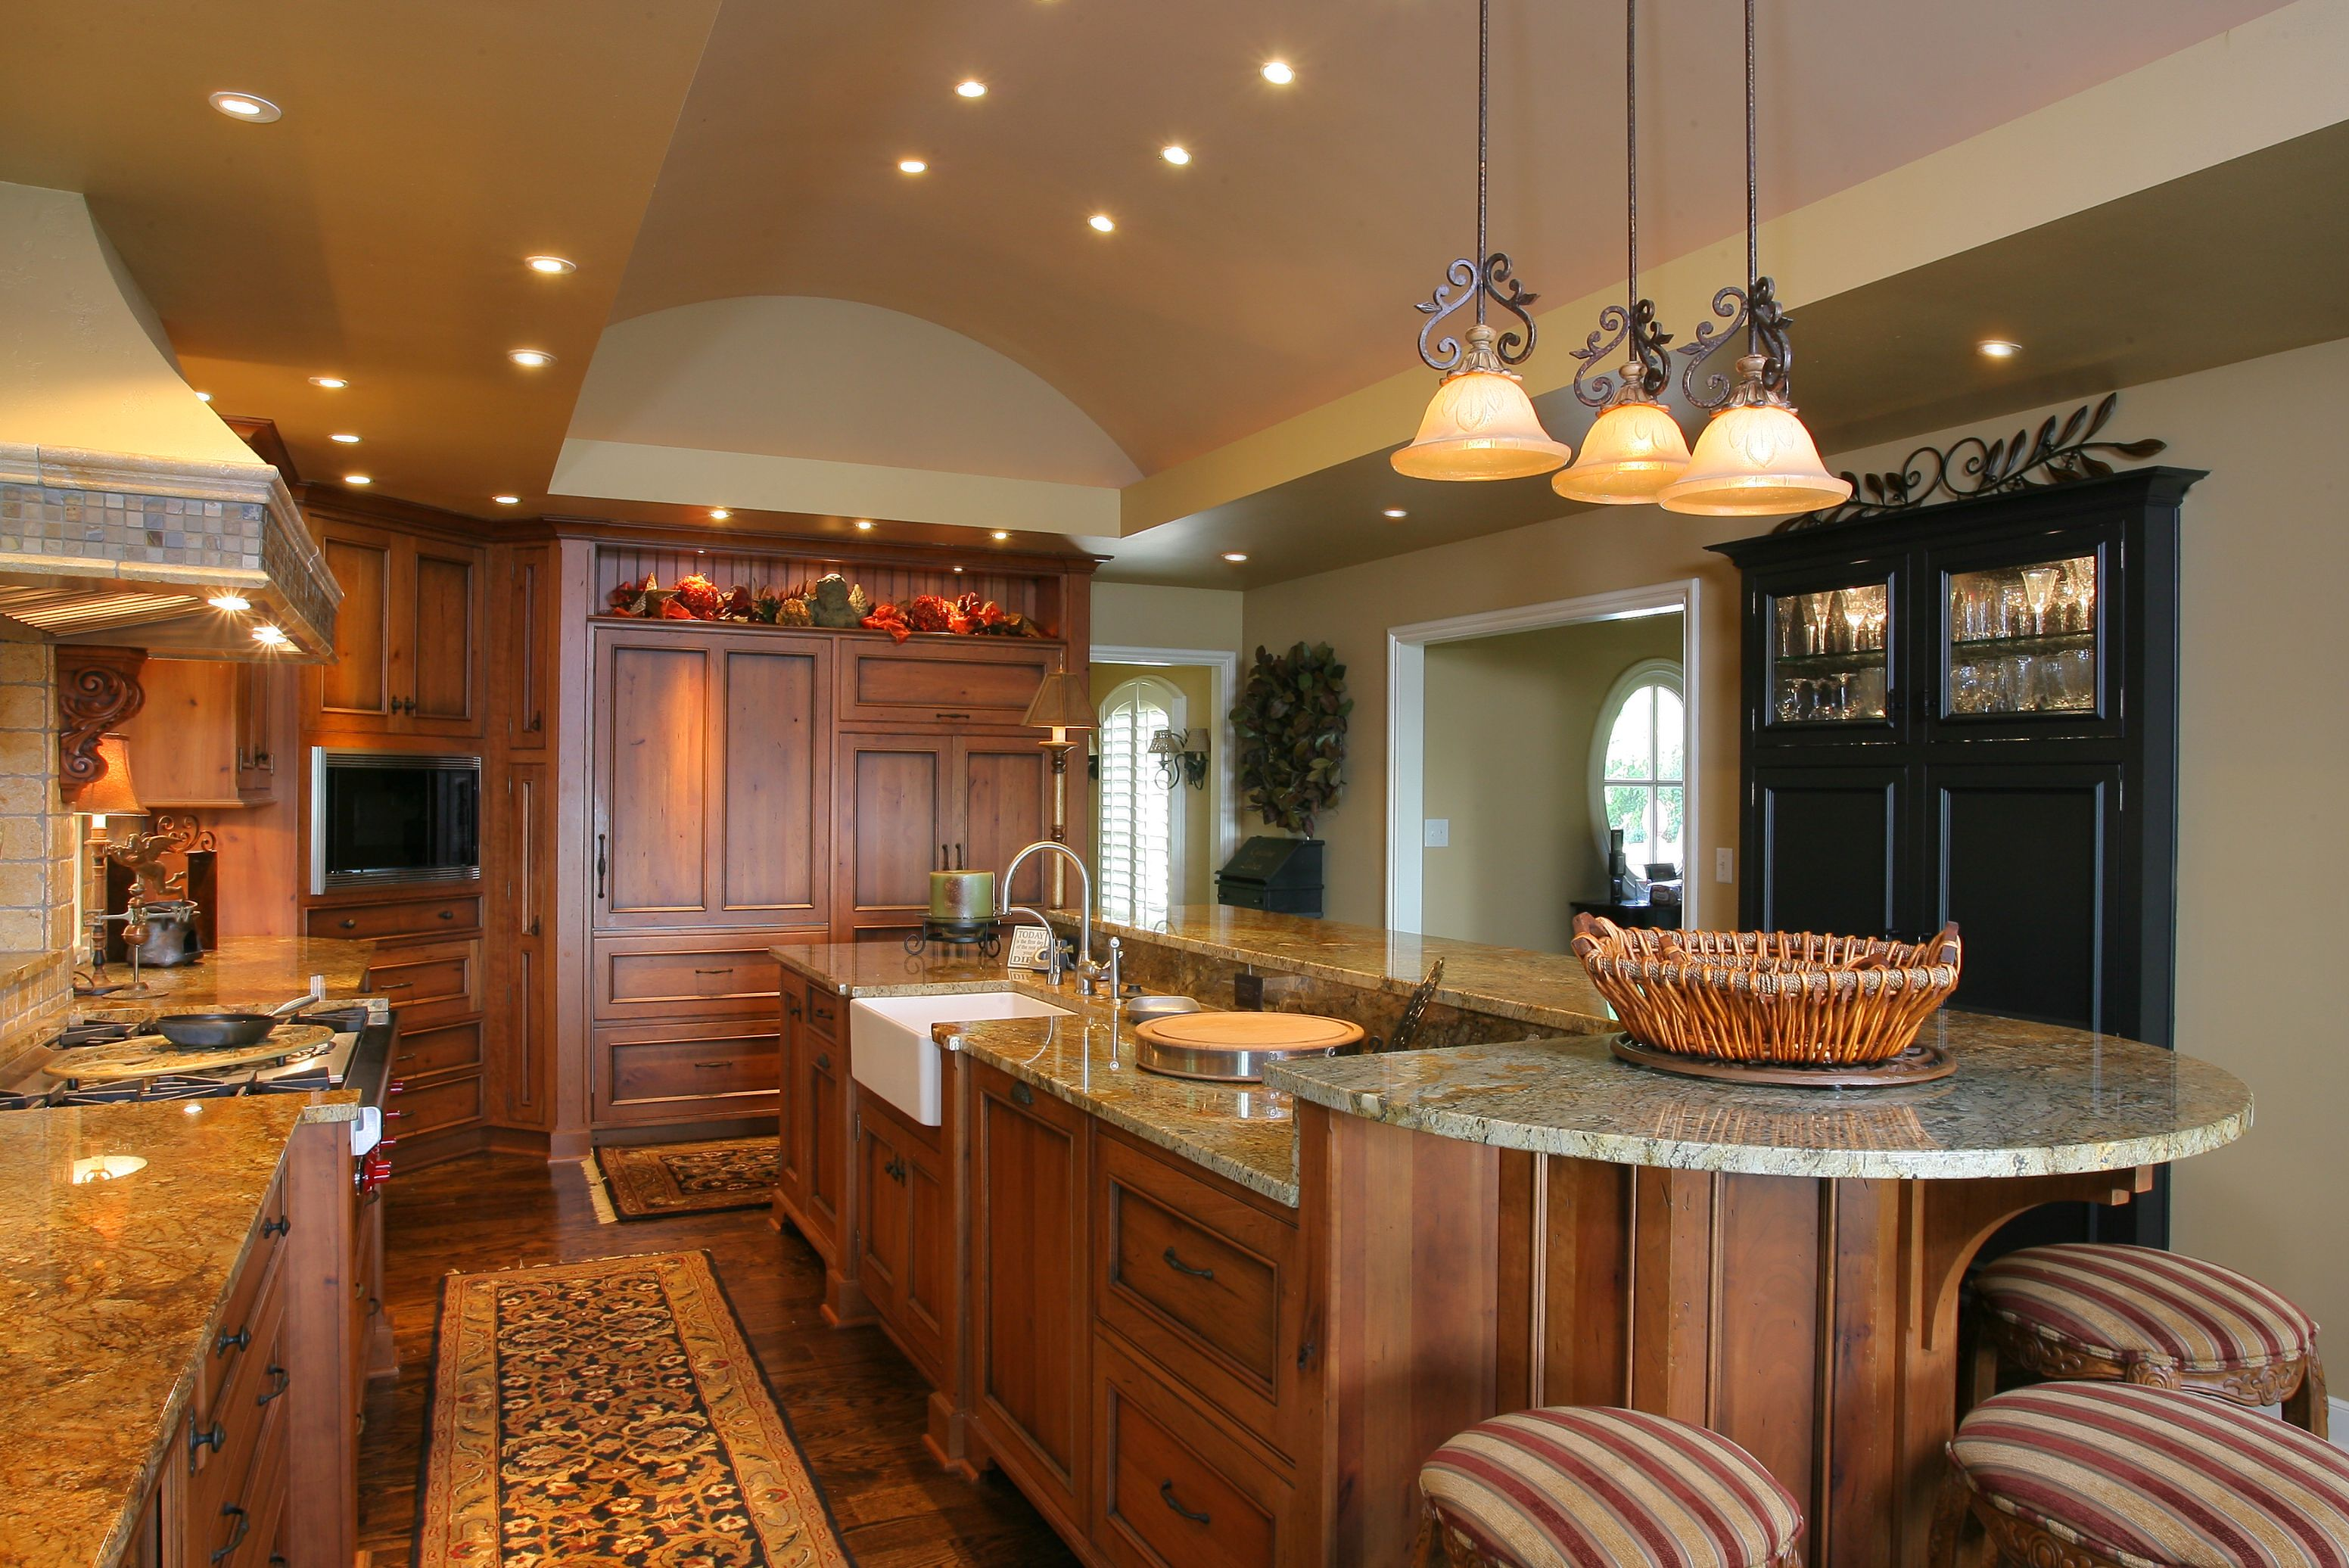 Multi Level Kitchen Islands Google Search Kitchen Island Light Height Narrow Kitchen Island Diy Kitchen Island